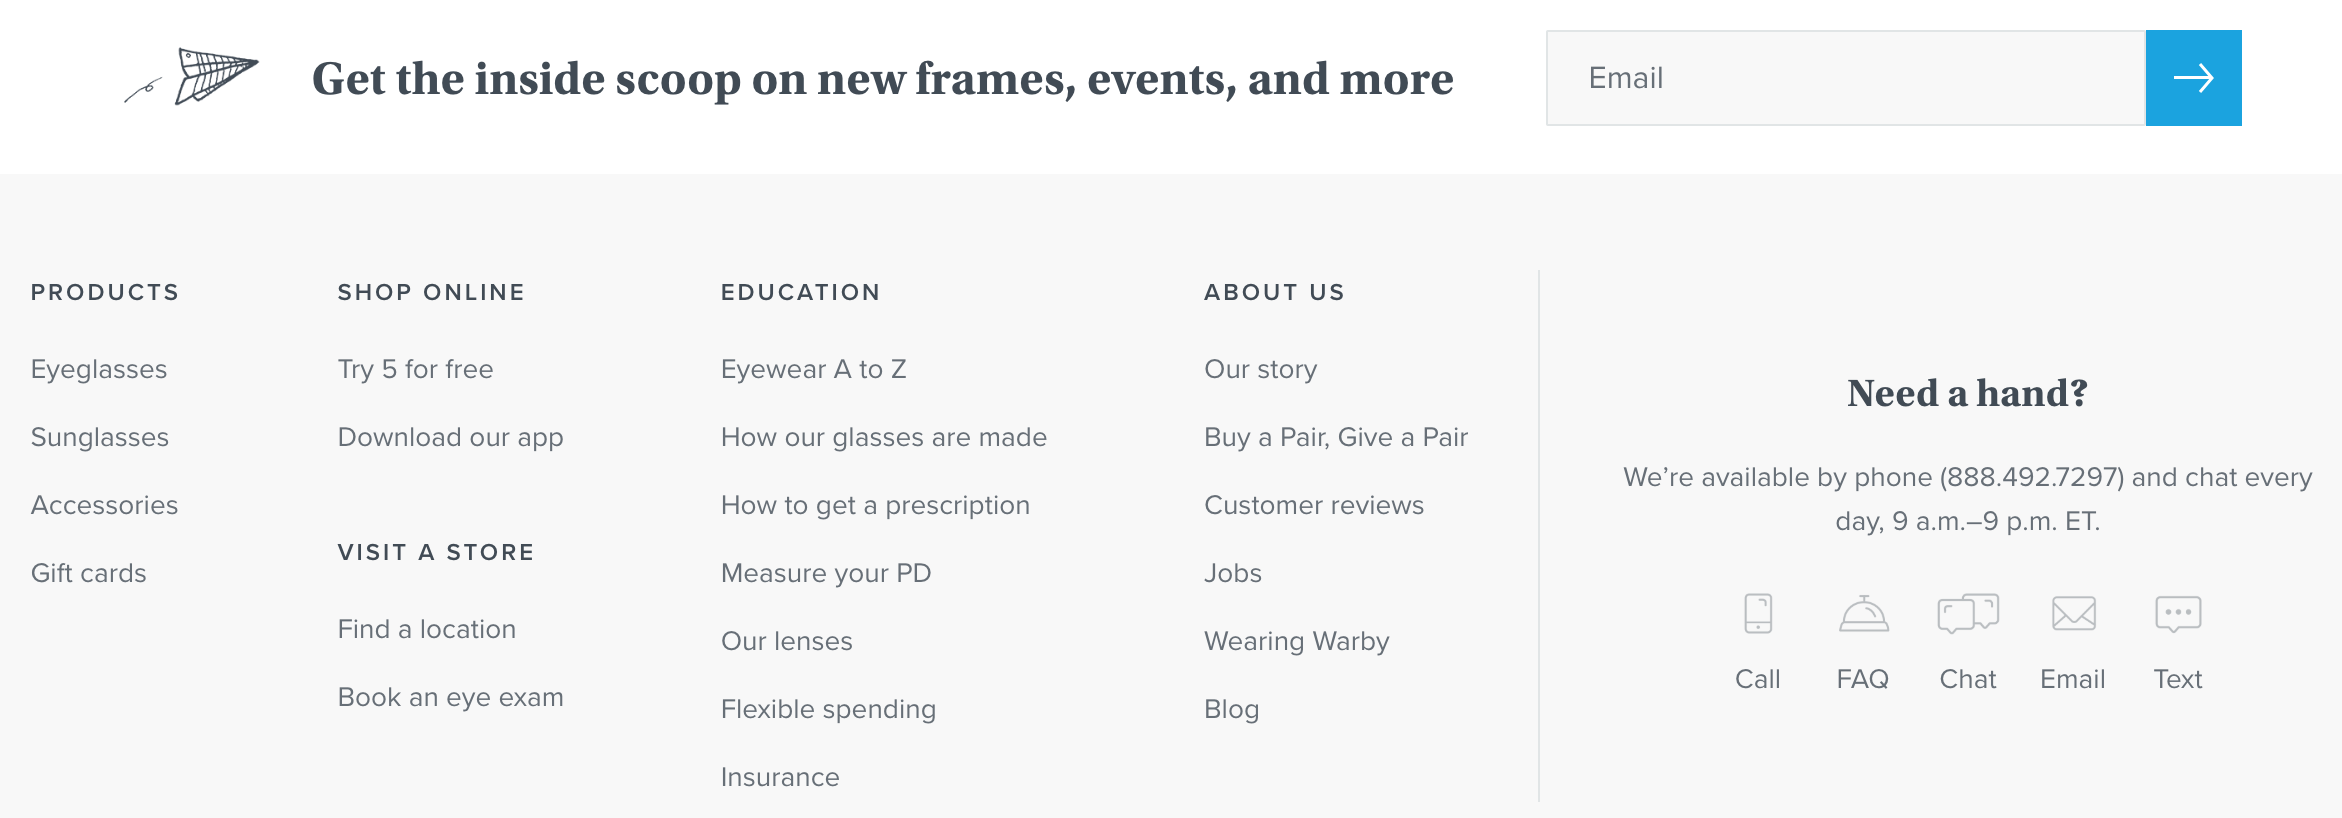 Footer from Warby Parker website